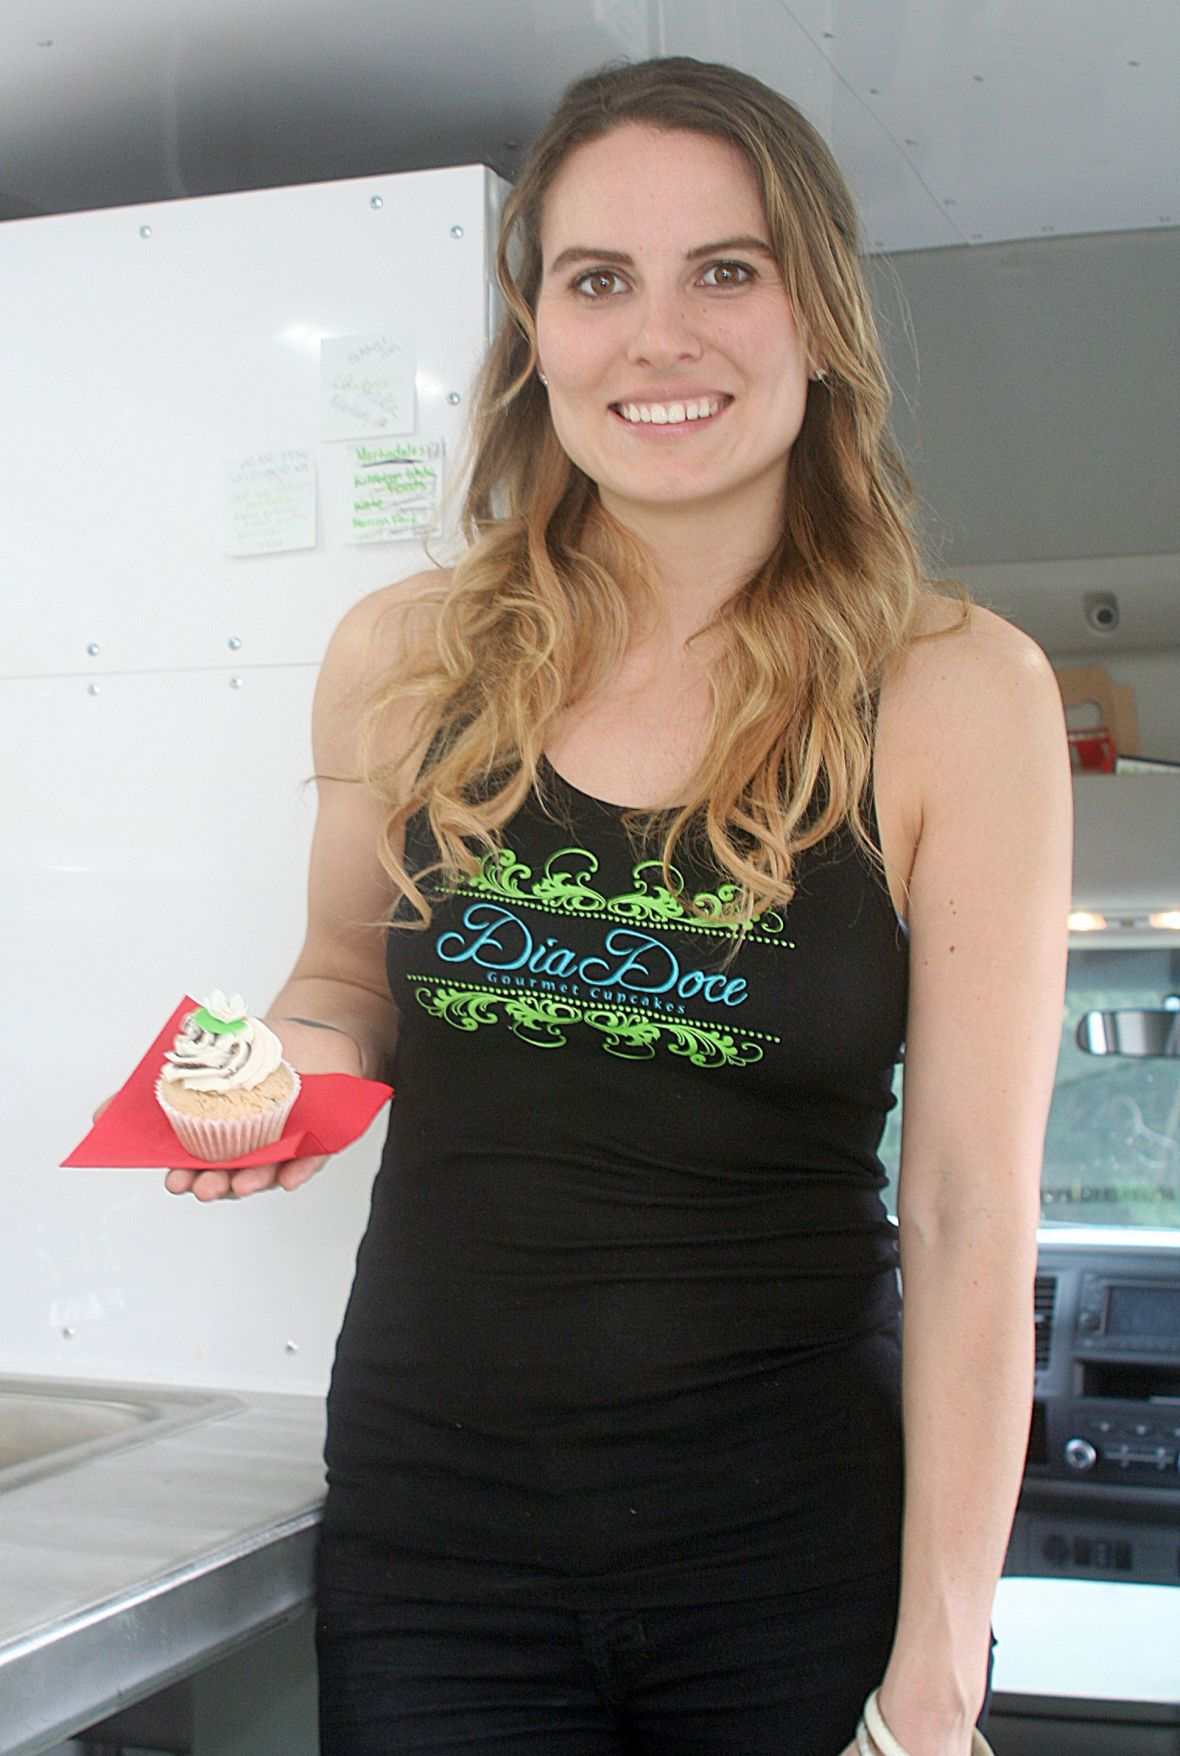 South Coventry woman wins 'Cupcake Wars'